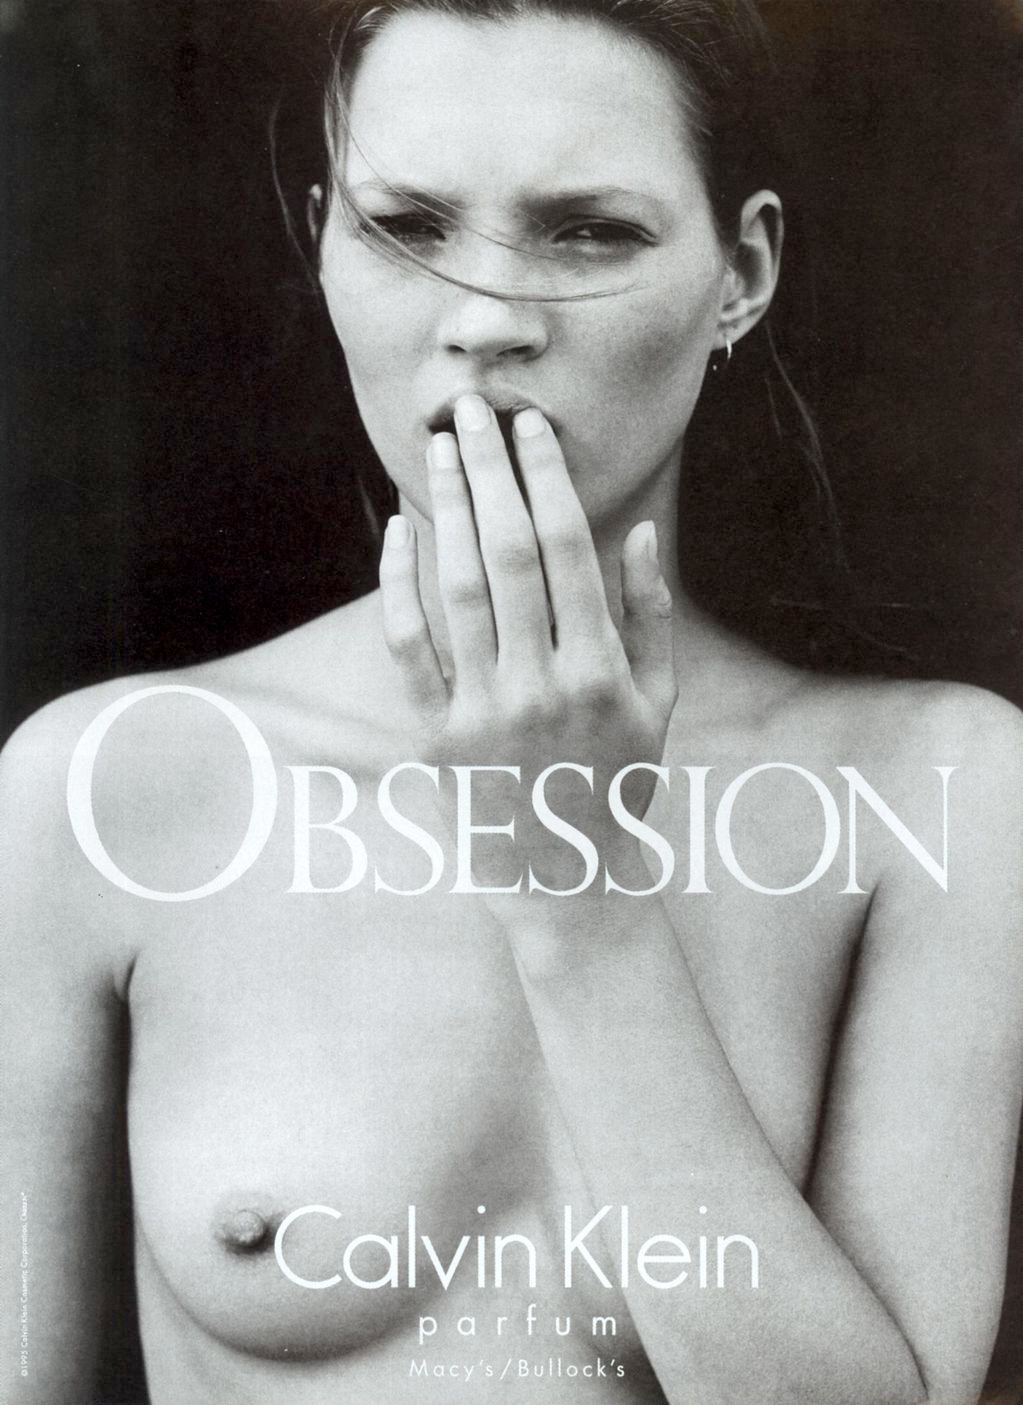 Kate Moss photographed by Mario Sorrenti for Obsession campaign 1995 / fashioned by love